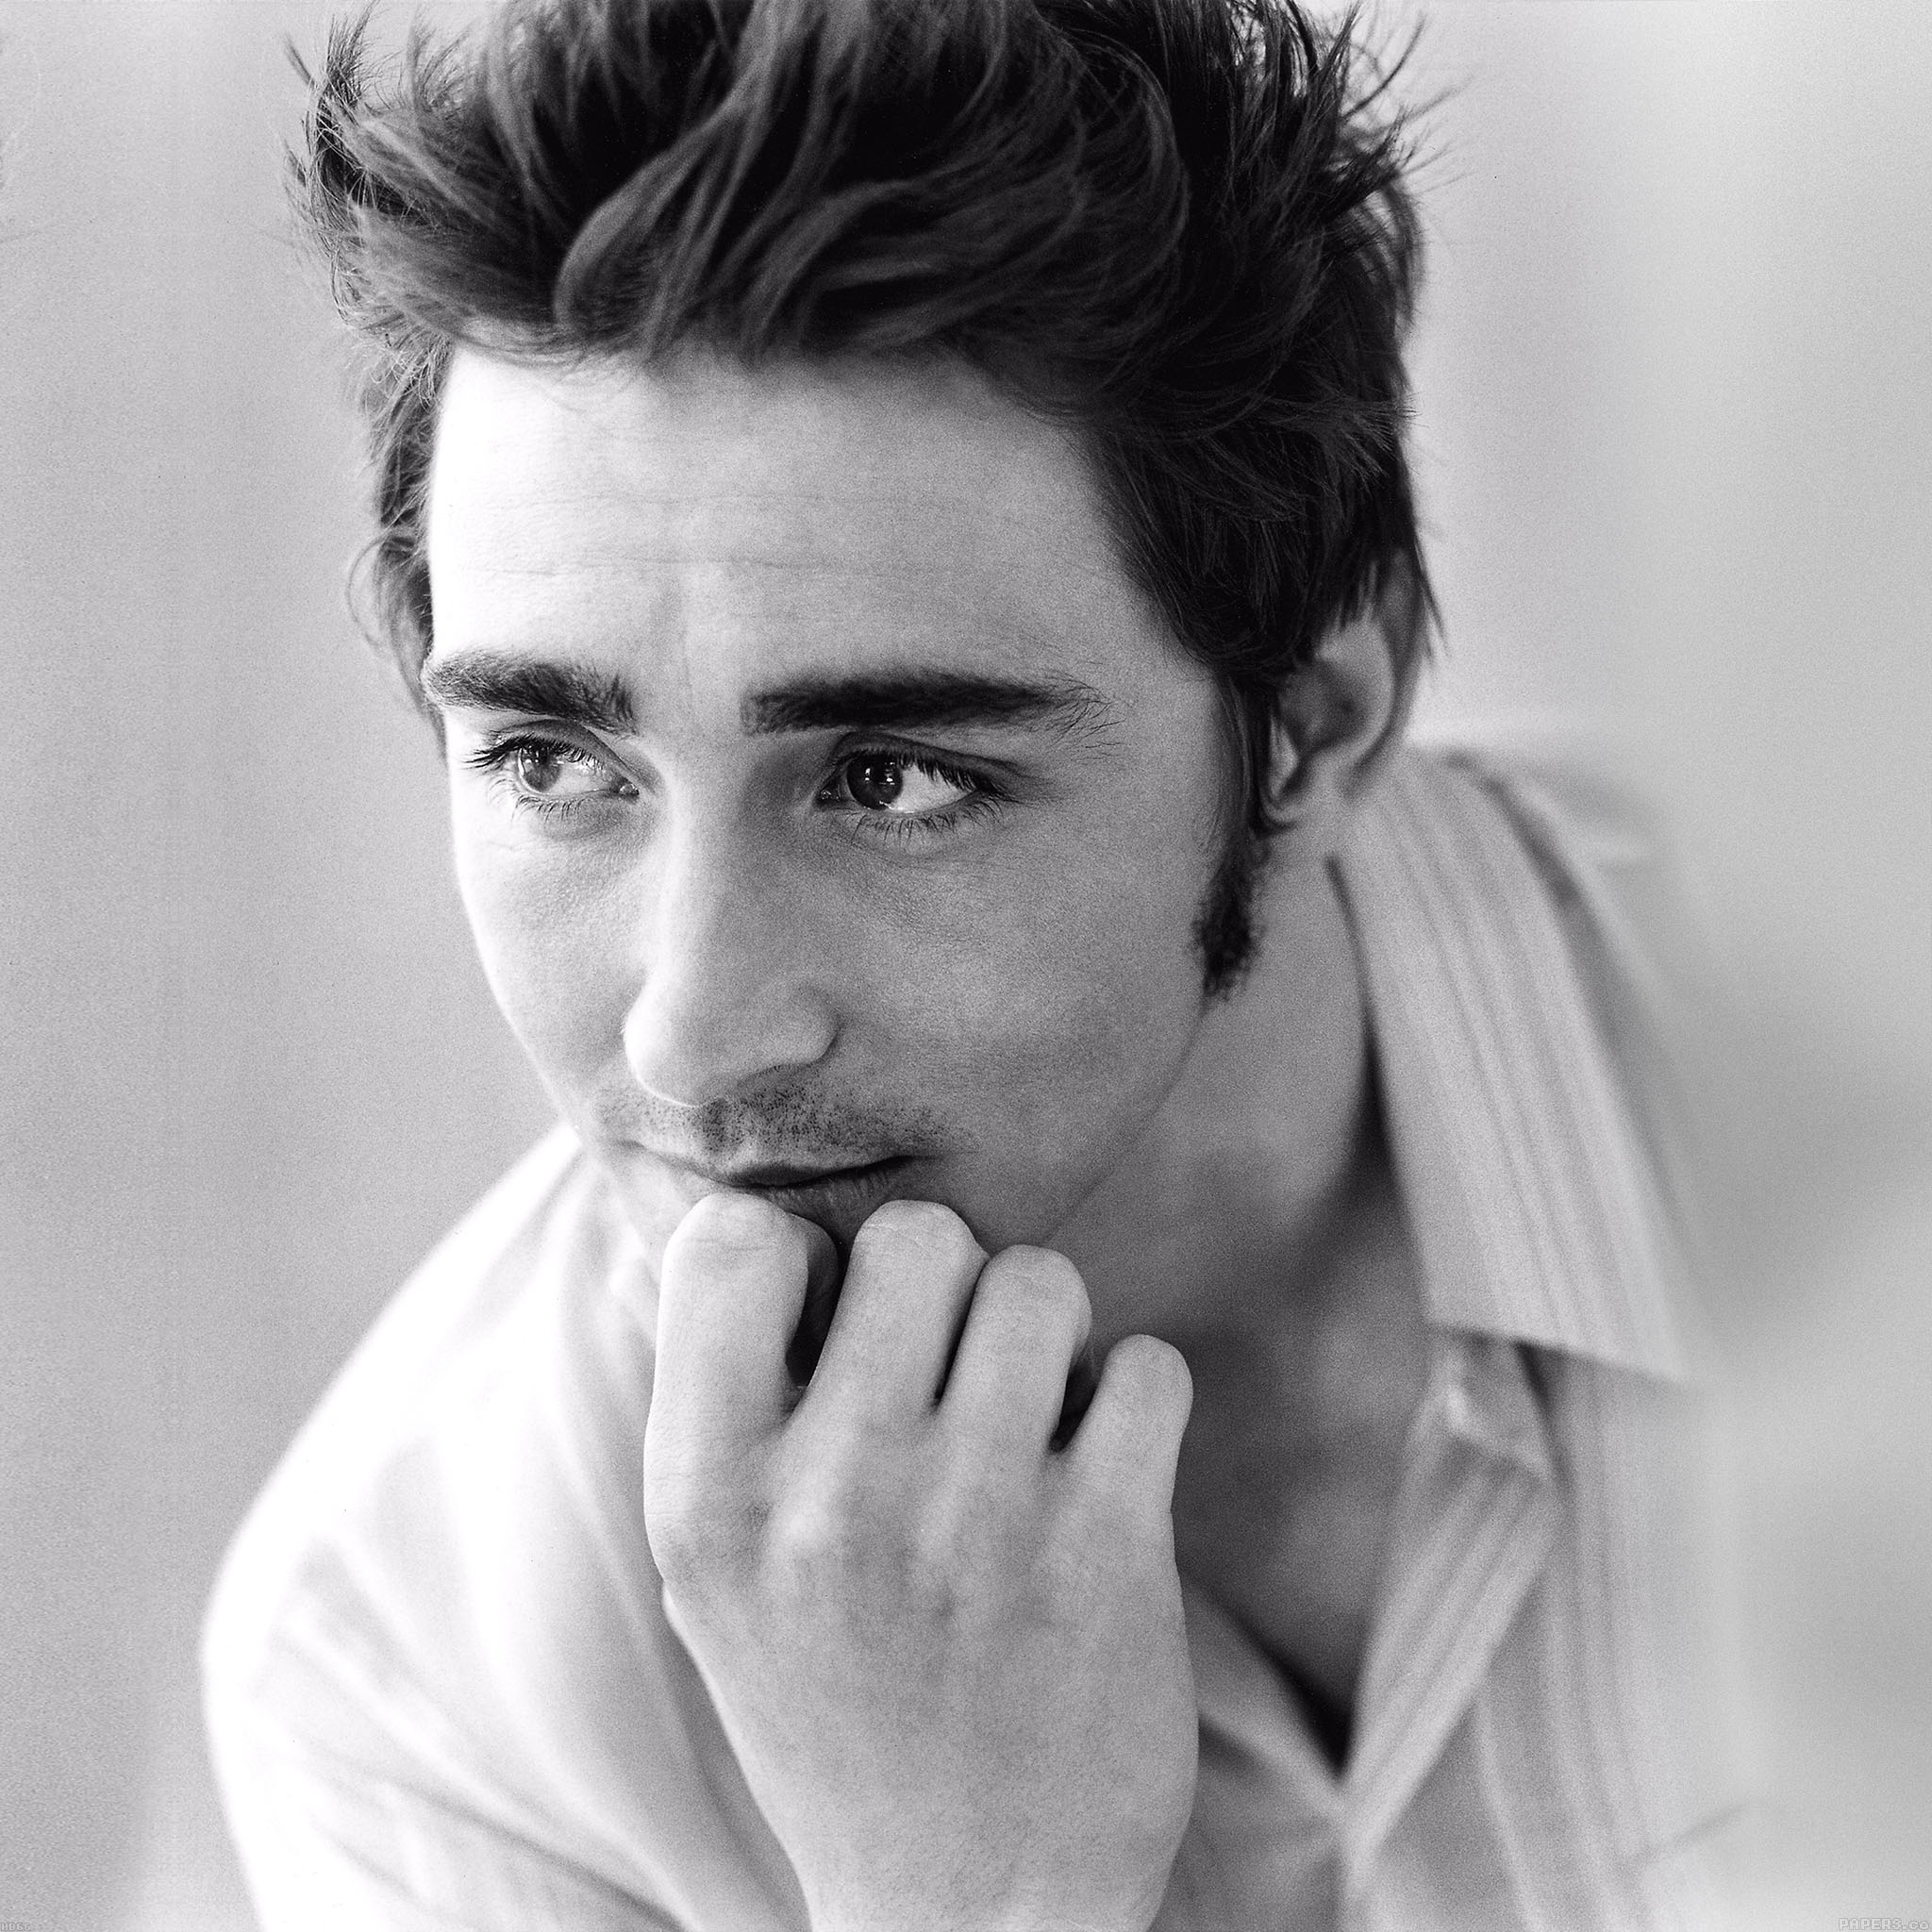 Lee Pace The Fall Wallpaper Freeios7 Hb66 Lee Pace Headshot Actor Parallax Hd